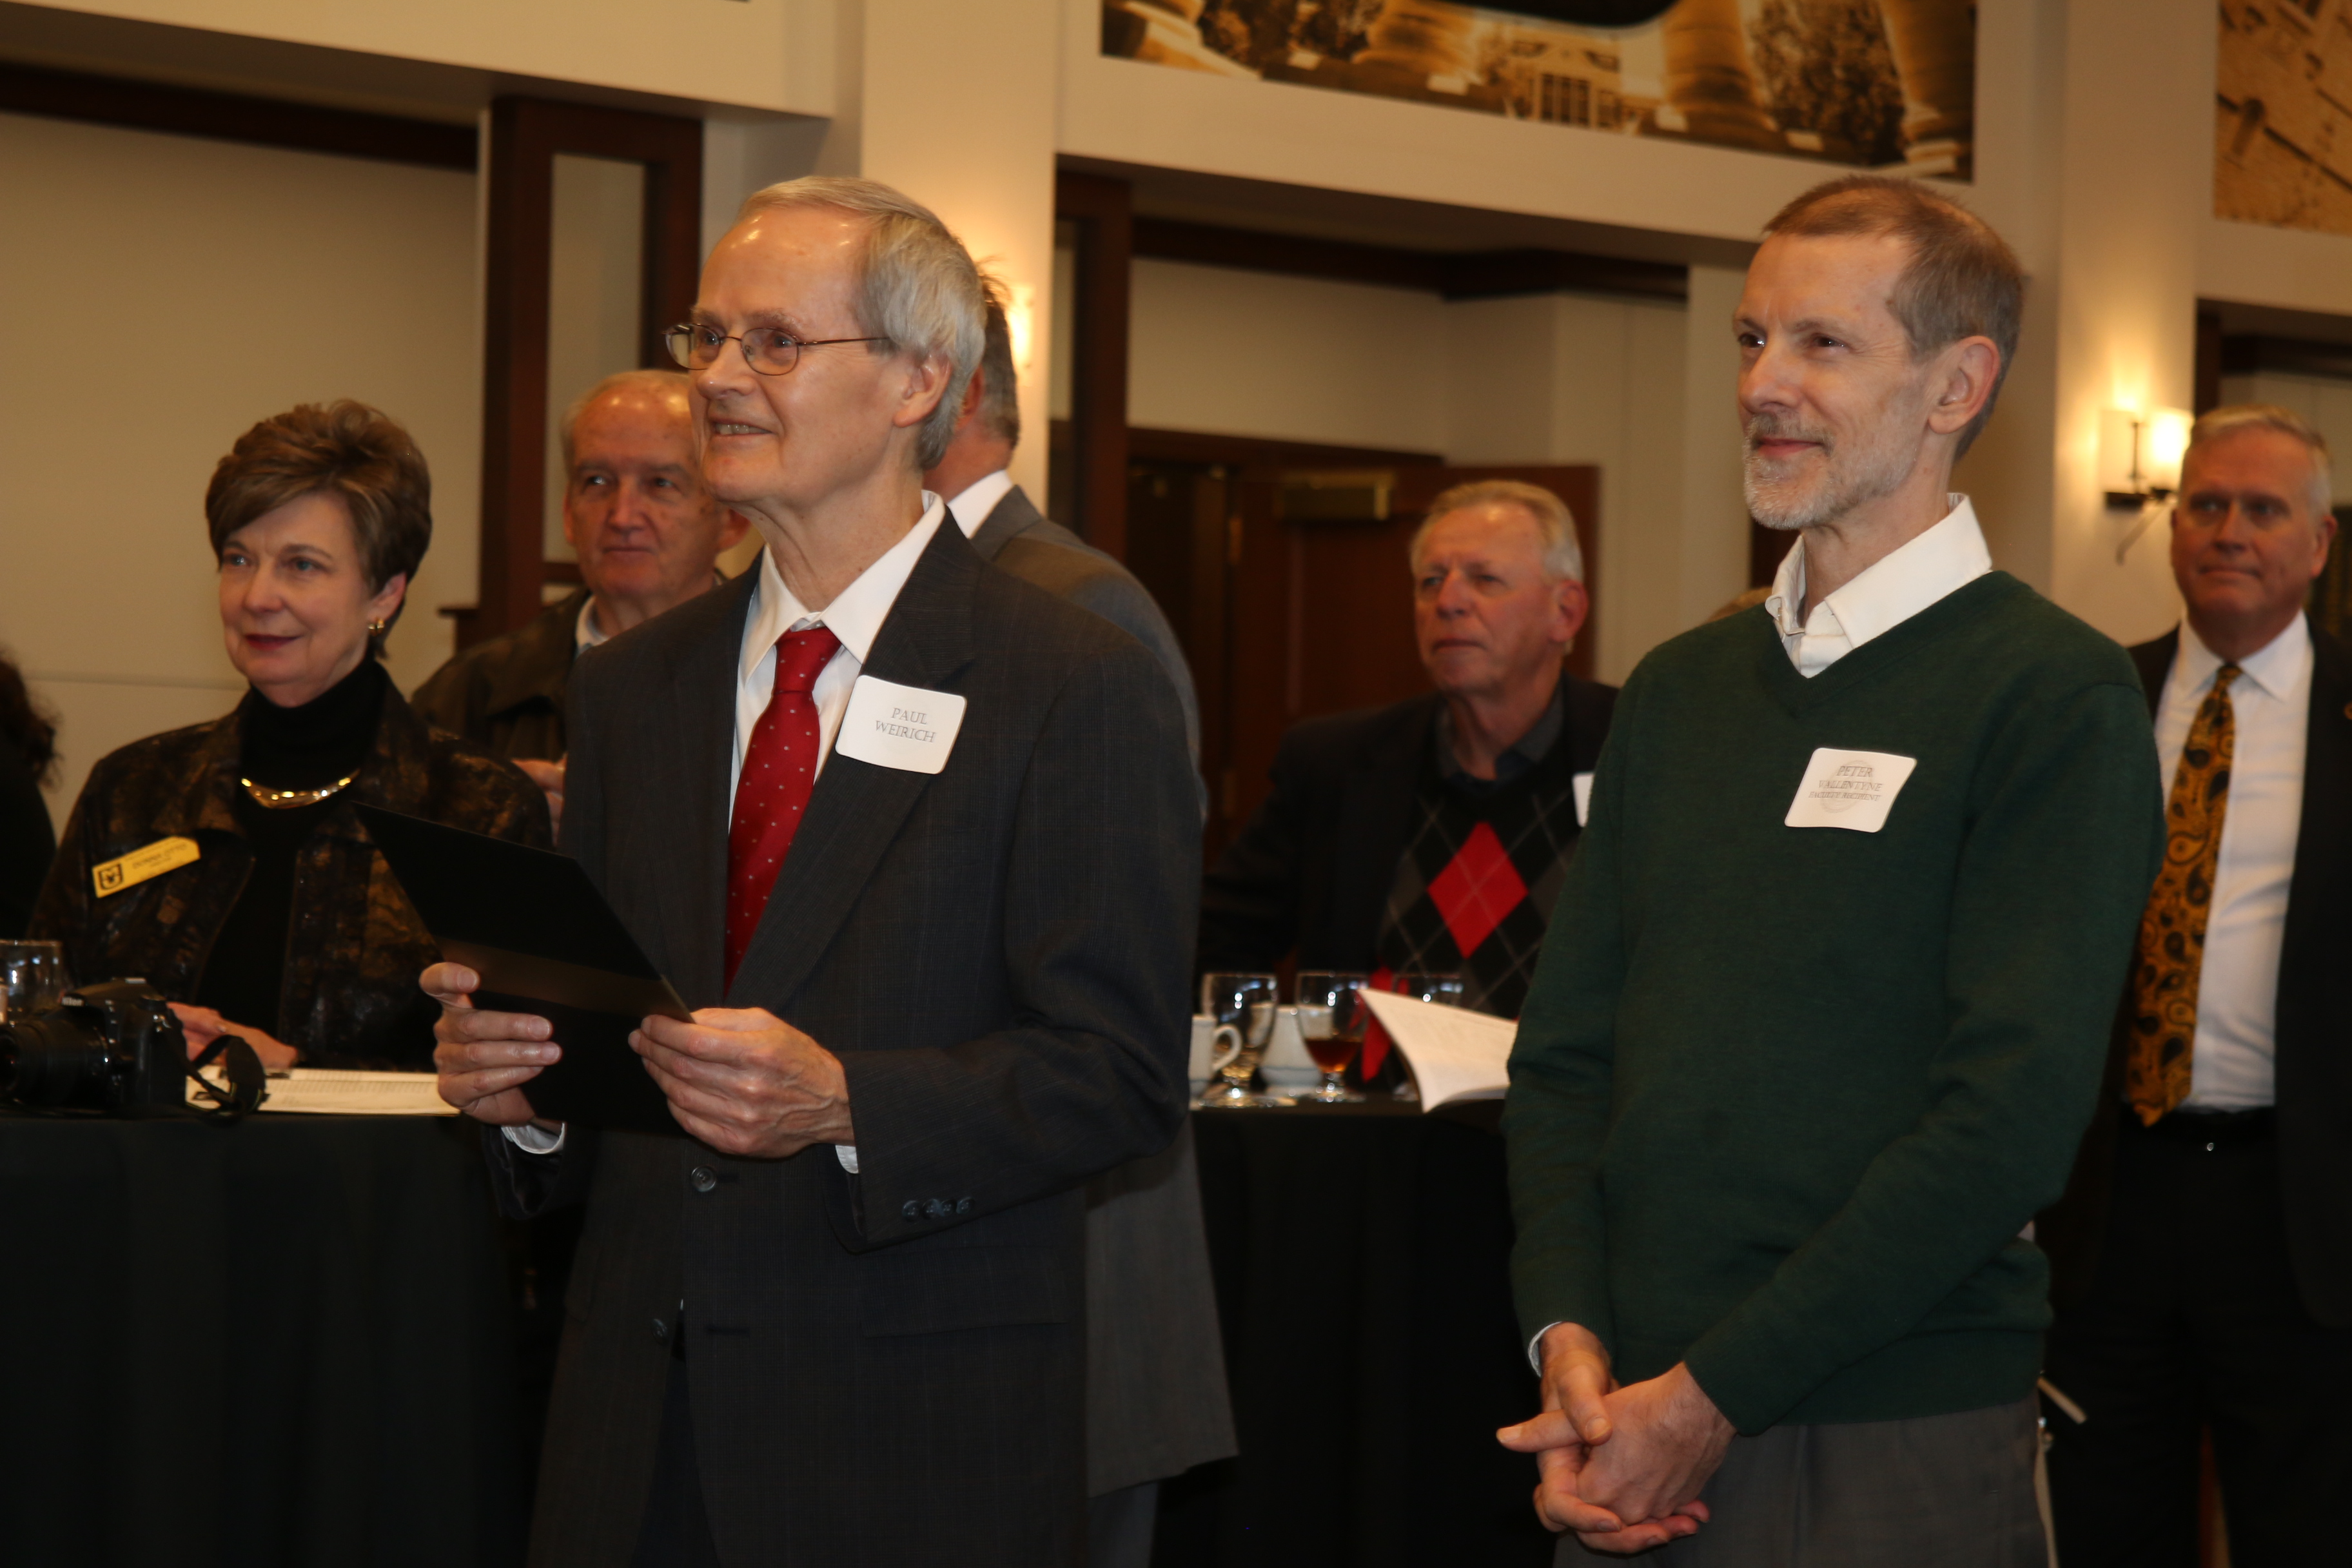 Dr. Peter Vallentyne and Dr. Paul Weirich at the Faculty-Alumni Awards